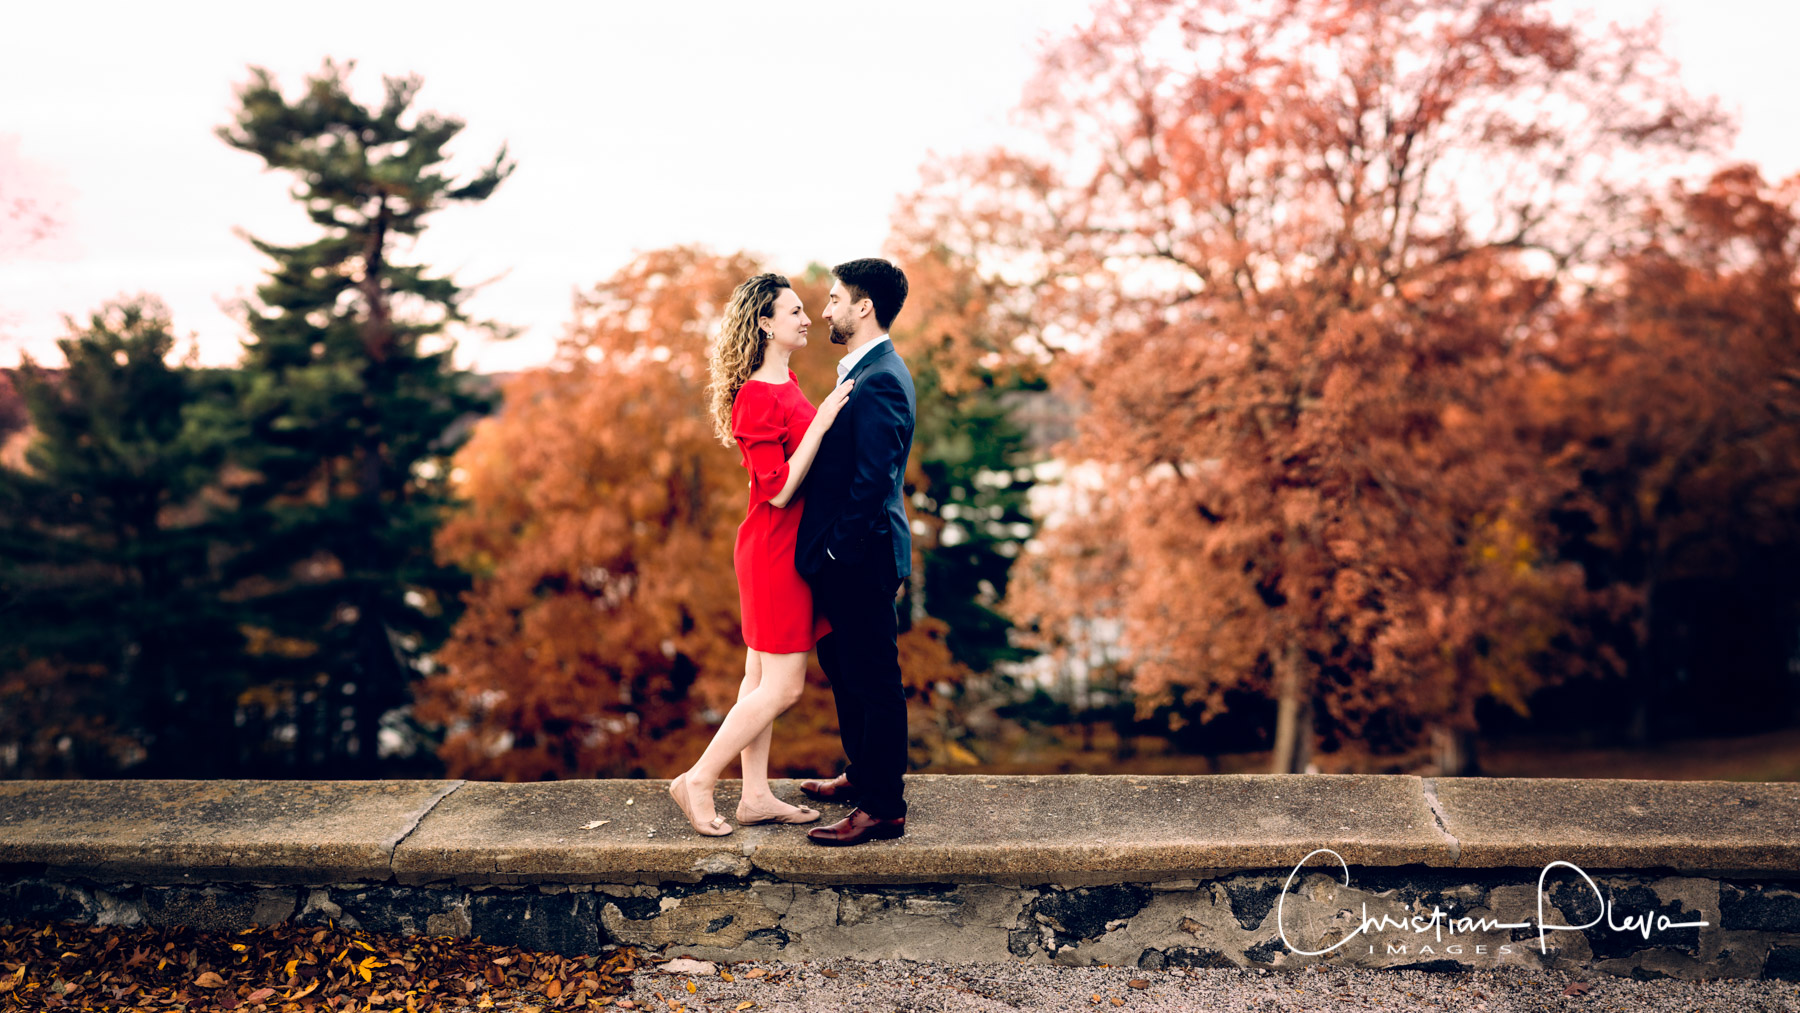 Boston Engagement Photography  M&B-1-2.jpg